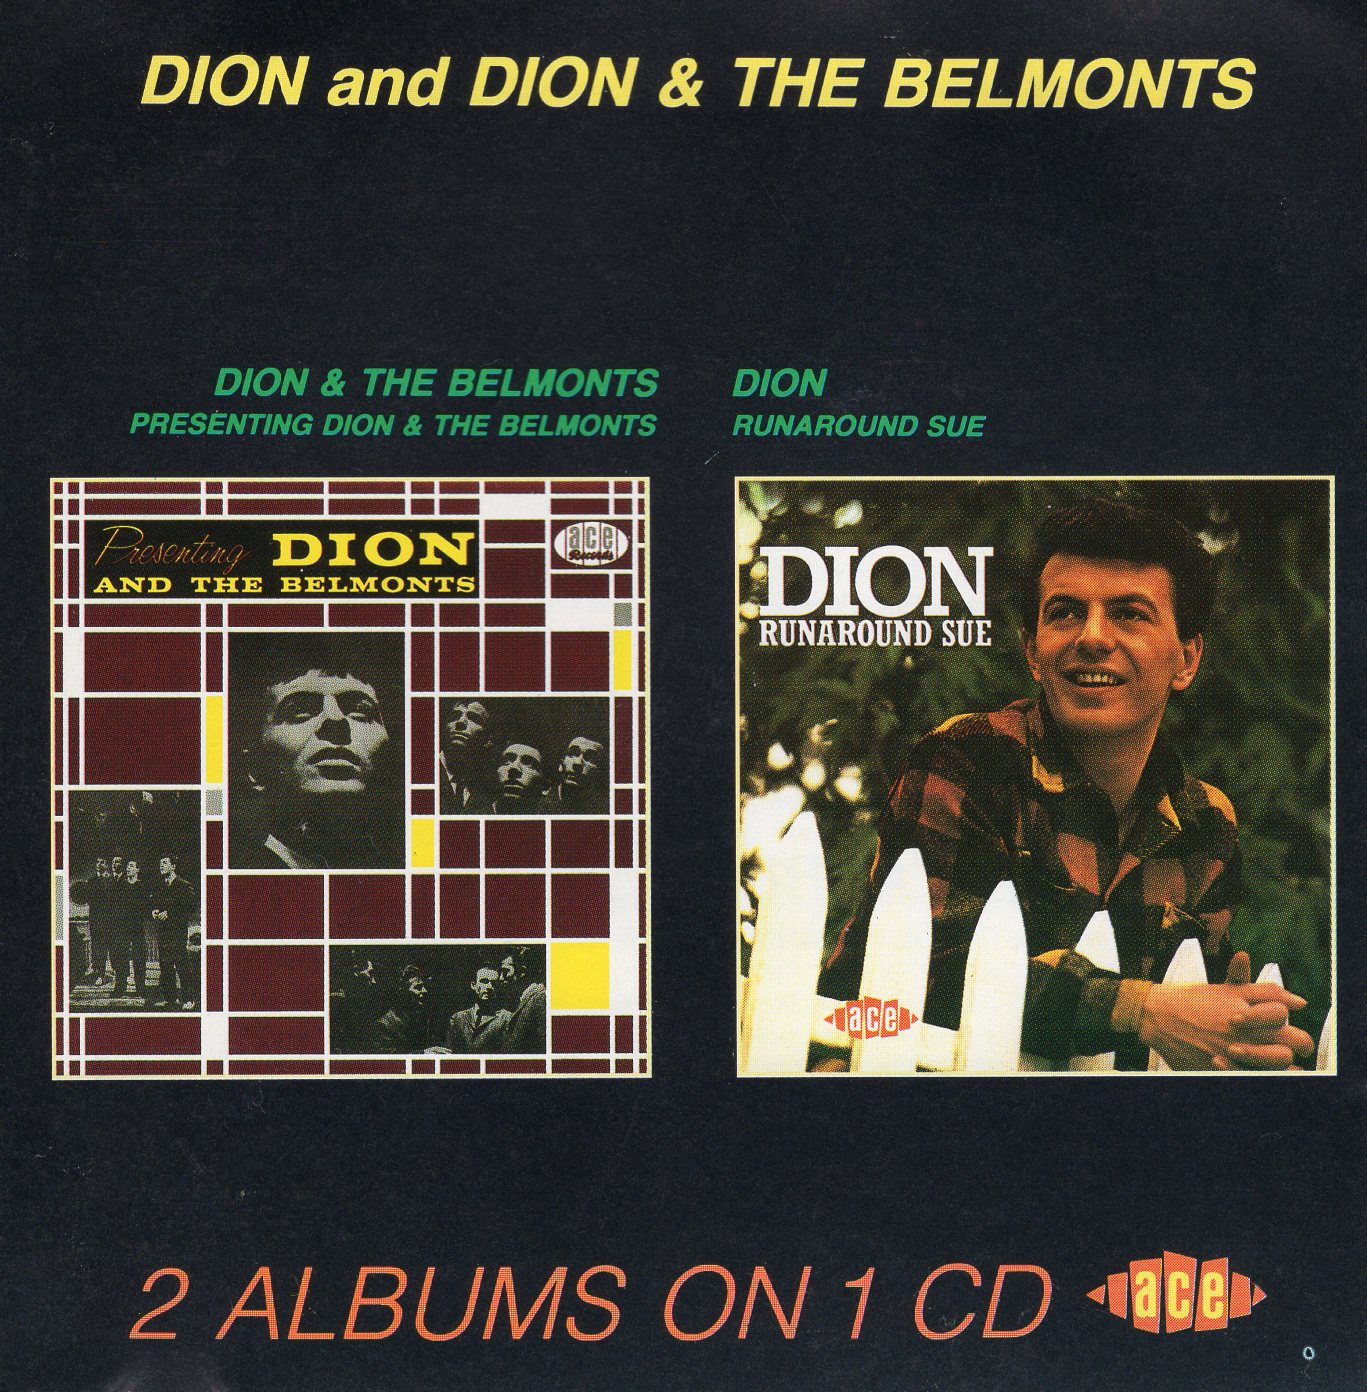 """Dion and Dion & The Belmonts"" Dion, Dion & The Belmonts"